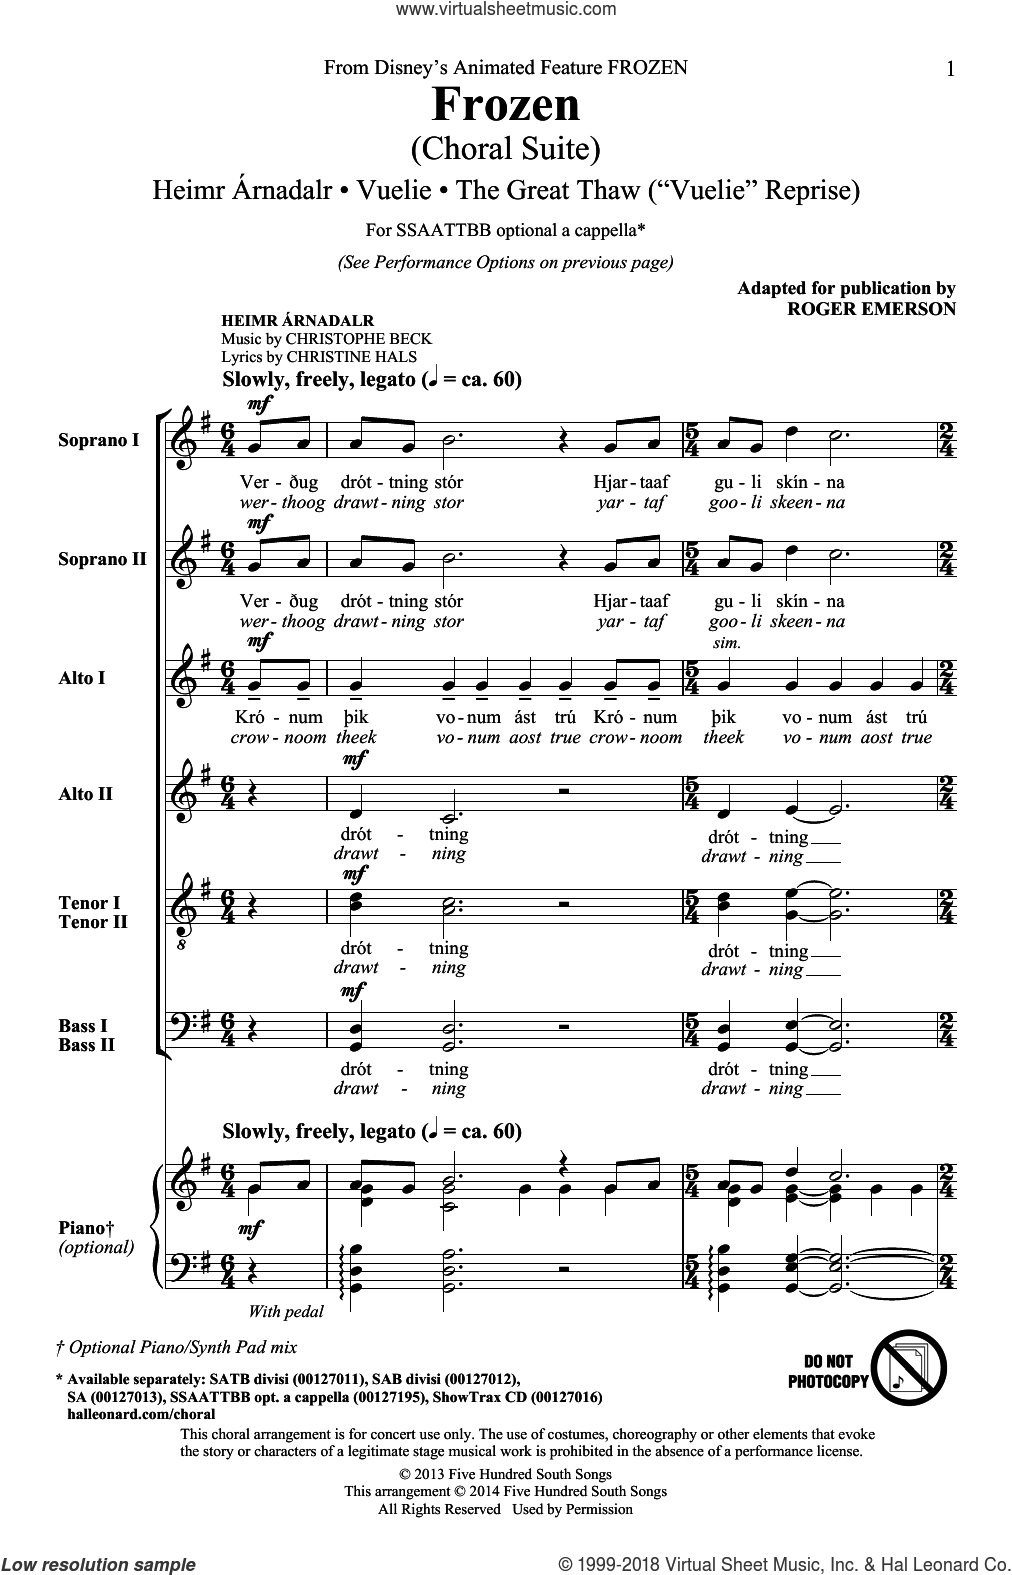 Frozen (Choral Suite) sheet music for choir (SATB: soprano, alto, tenor, bass) by Roger Emerson, Christine Hals and Christophe Beck, intermediate. Score Image Preview.